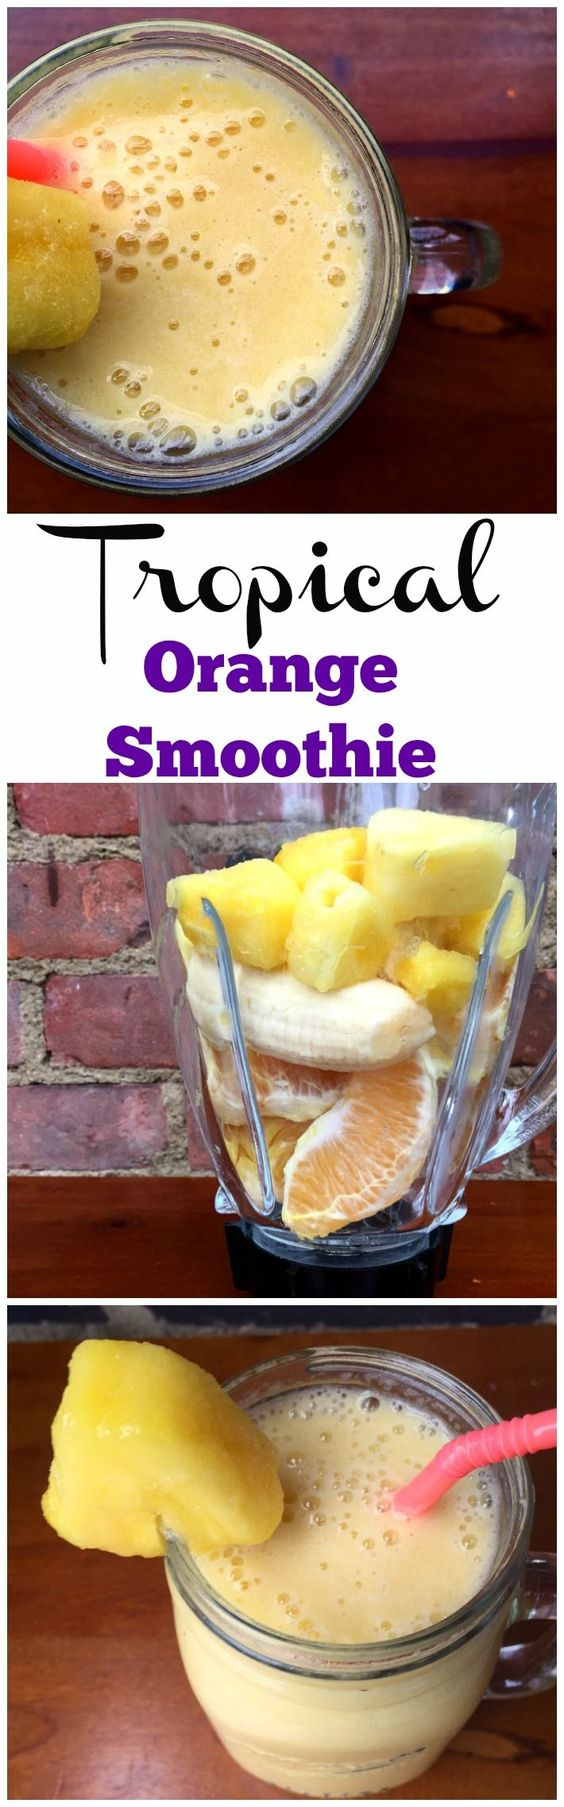 With only four easy ingredients, this smoothie contains a boost of vitamins and is a light and refreshing way to start your day.